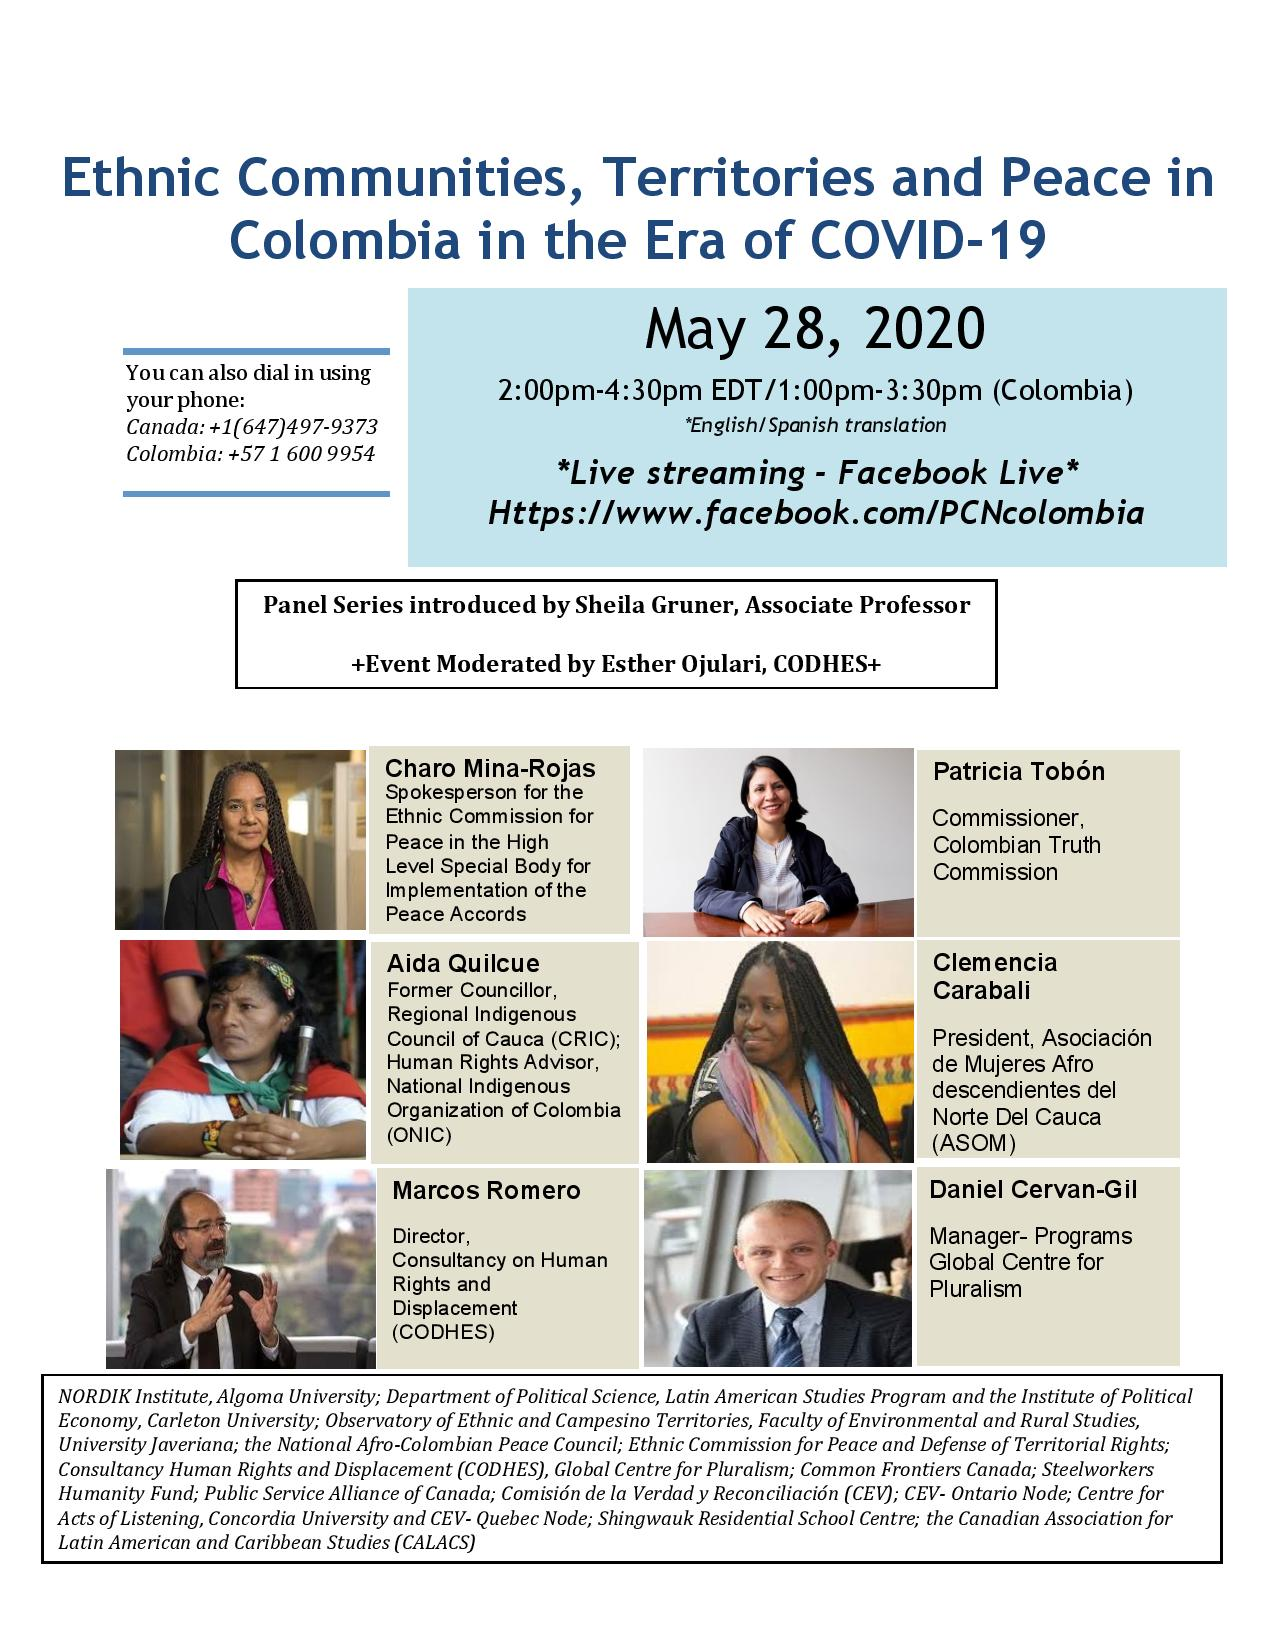 Ethnic Communities, Territories and Peace in Colombia in the Era of COVID-19